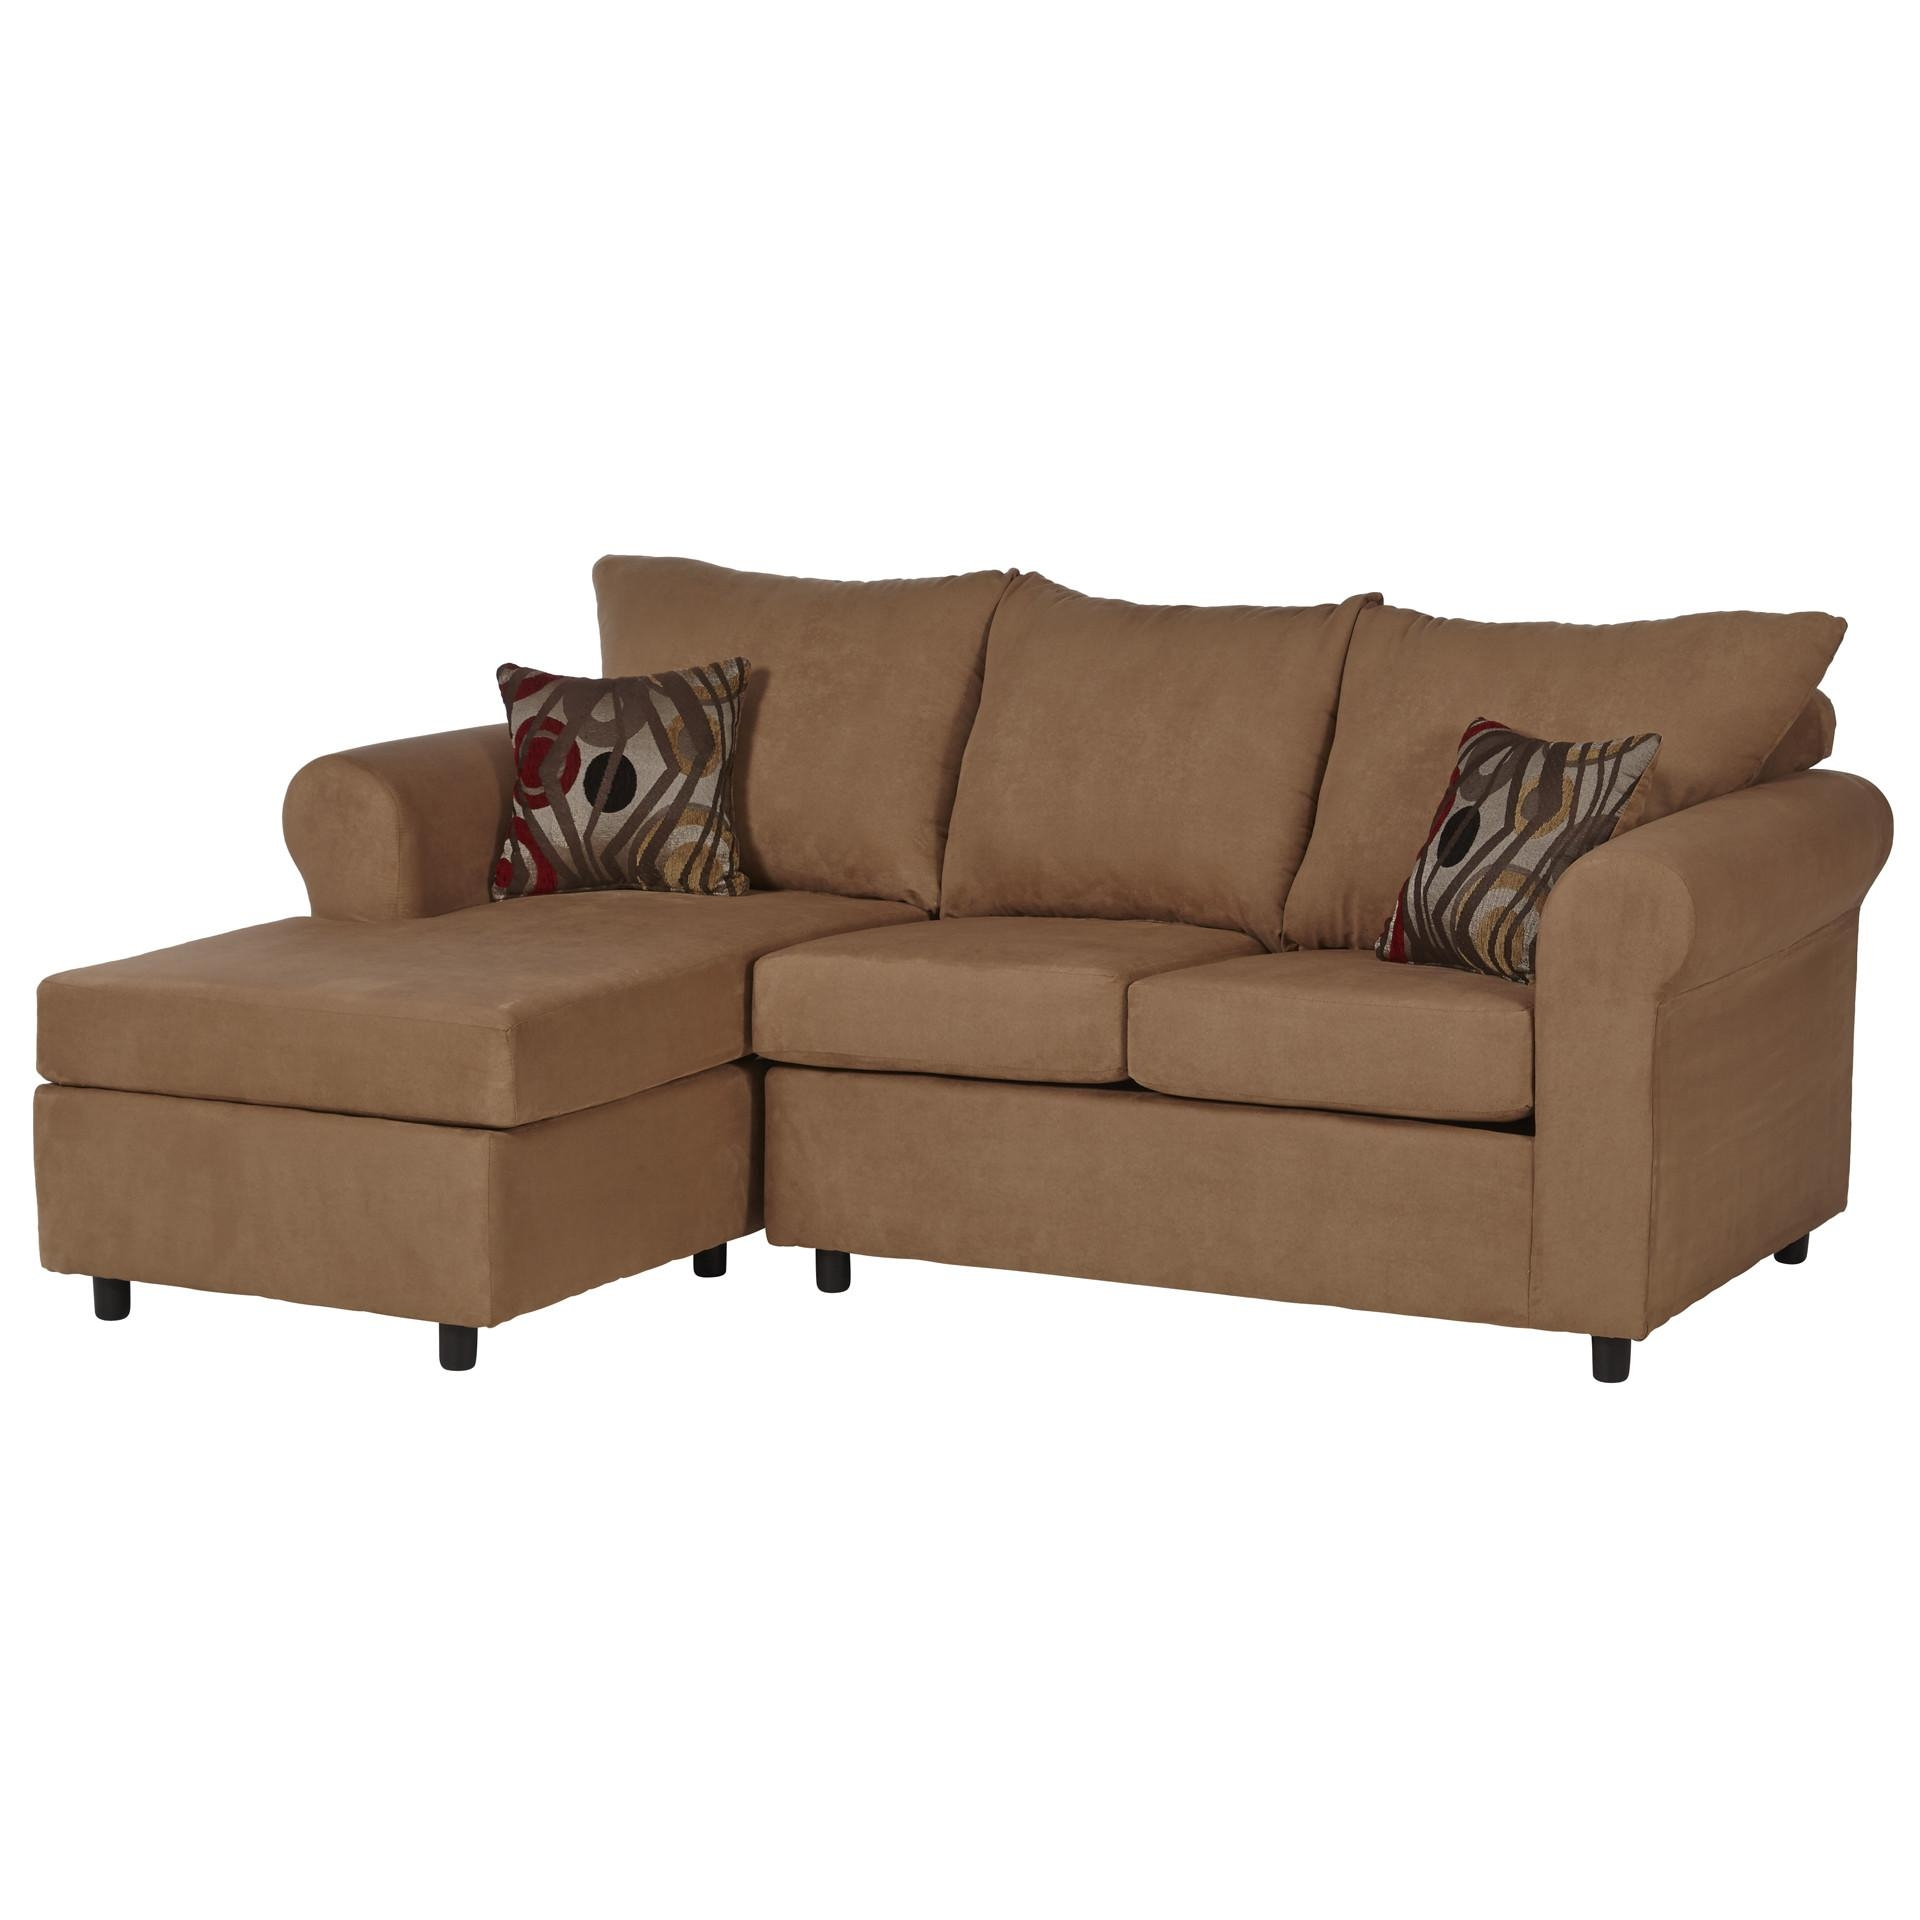 Sectional Sofa Design : Sectional Pit Sofa Small Motif Pillows For Pit Sofas (Image 16 of 20)